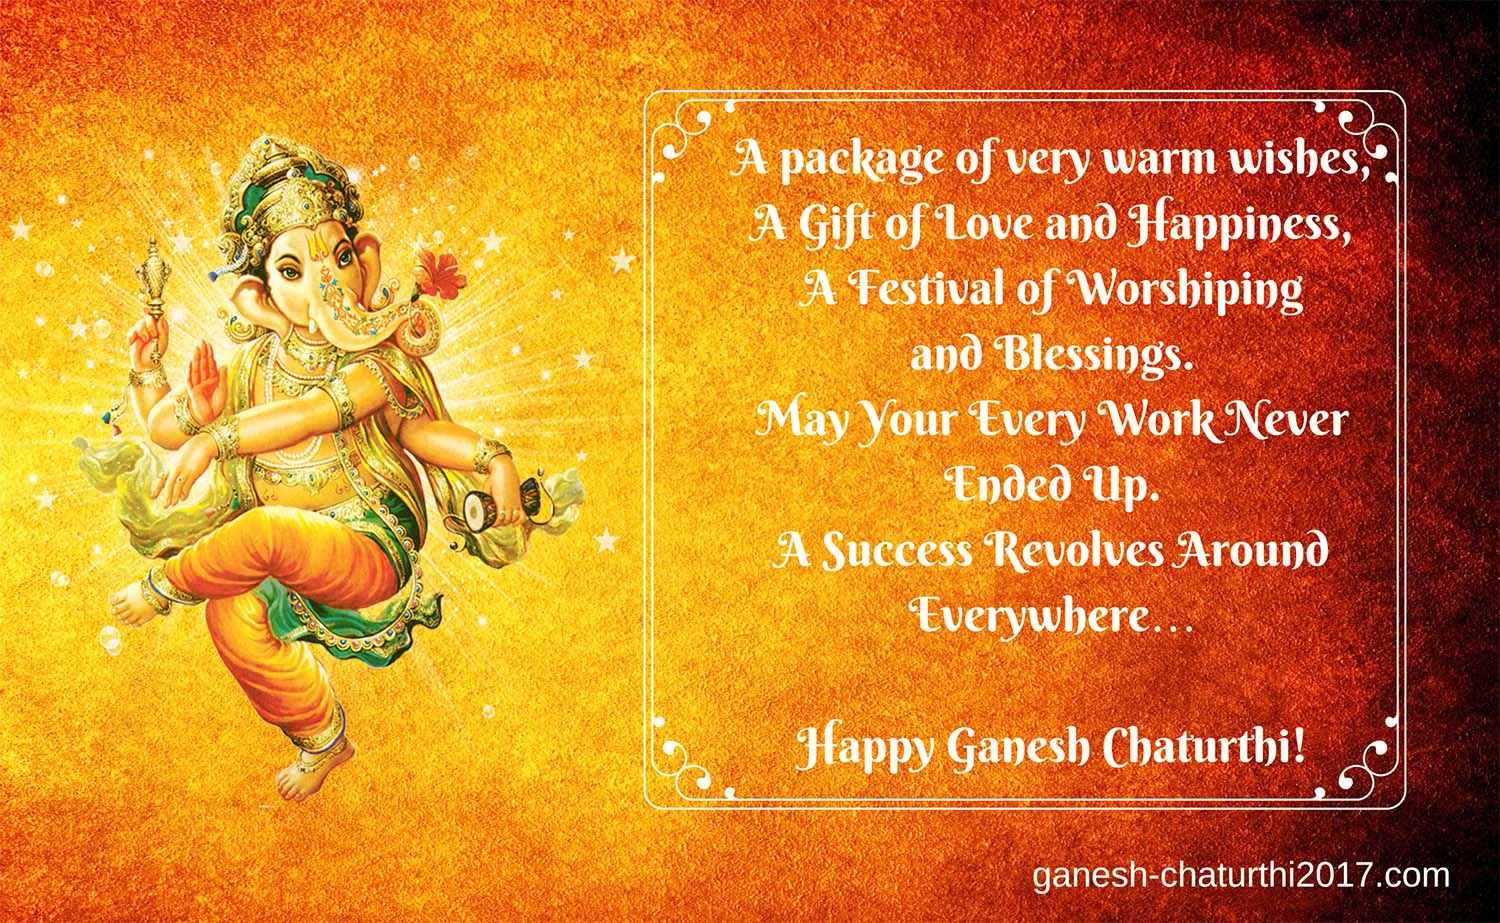 Ganesh Chaturthi Wishes in English